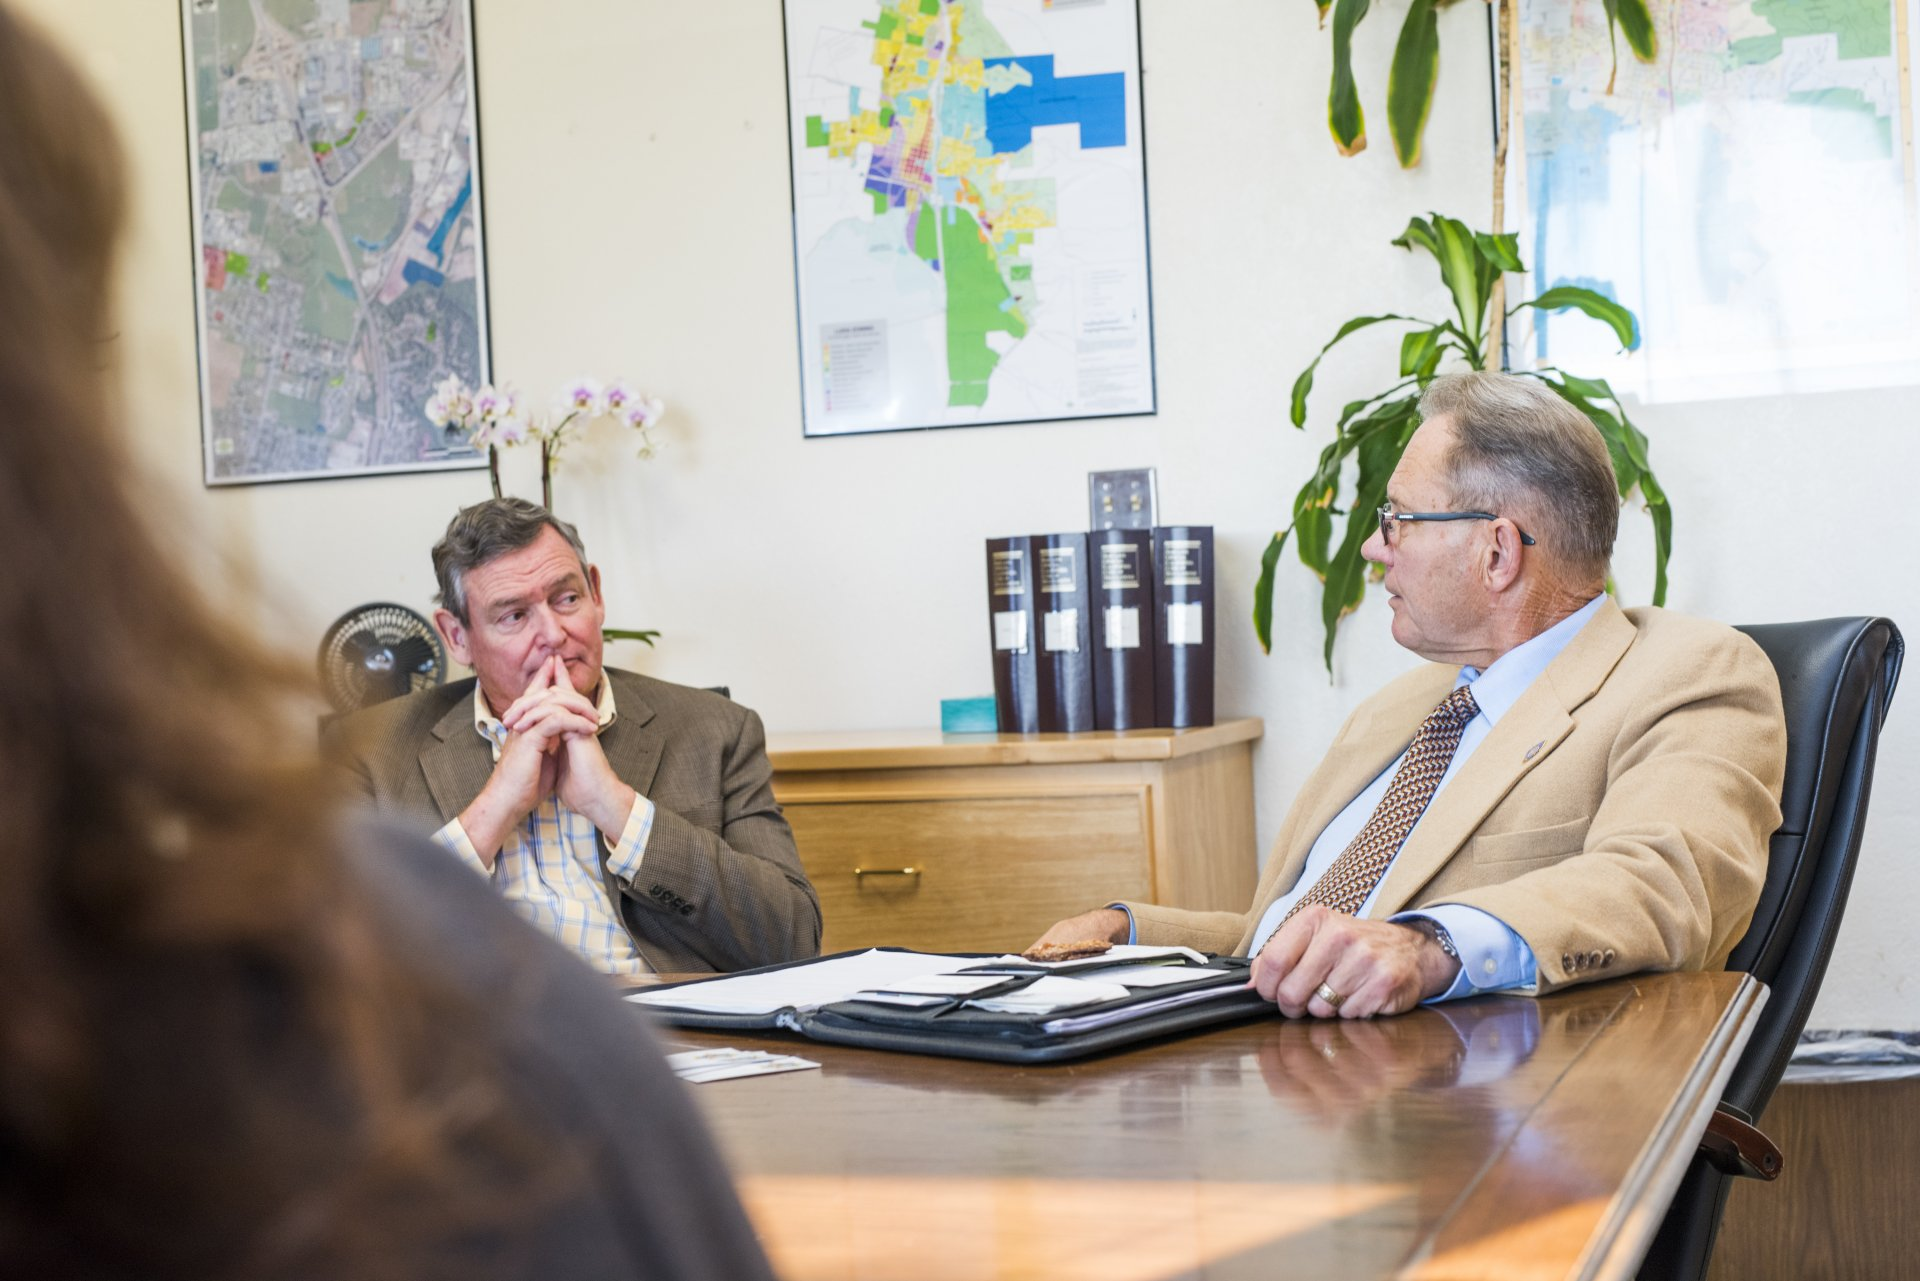 CSU Chancellor Timothy P. White with the Arcata Interim Police Chief Richard Ehle on Oct. 9 at HSU. | Photo courtesy of Humboldt State University